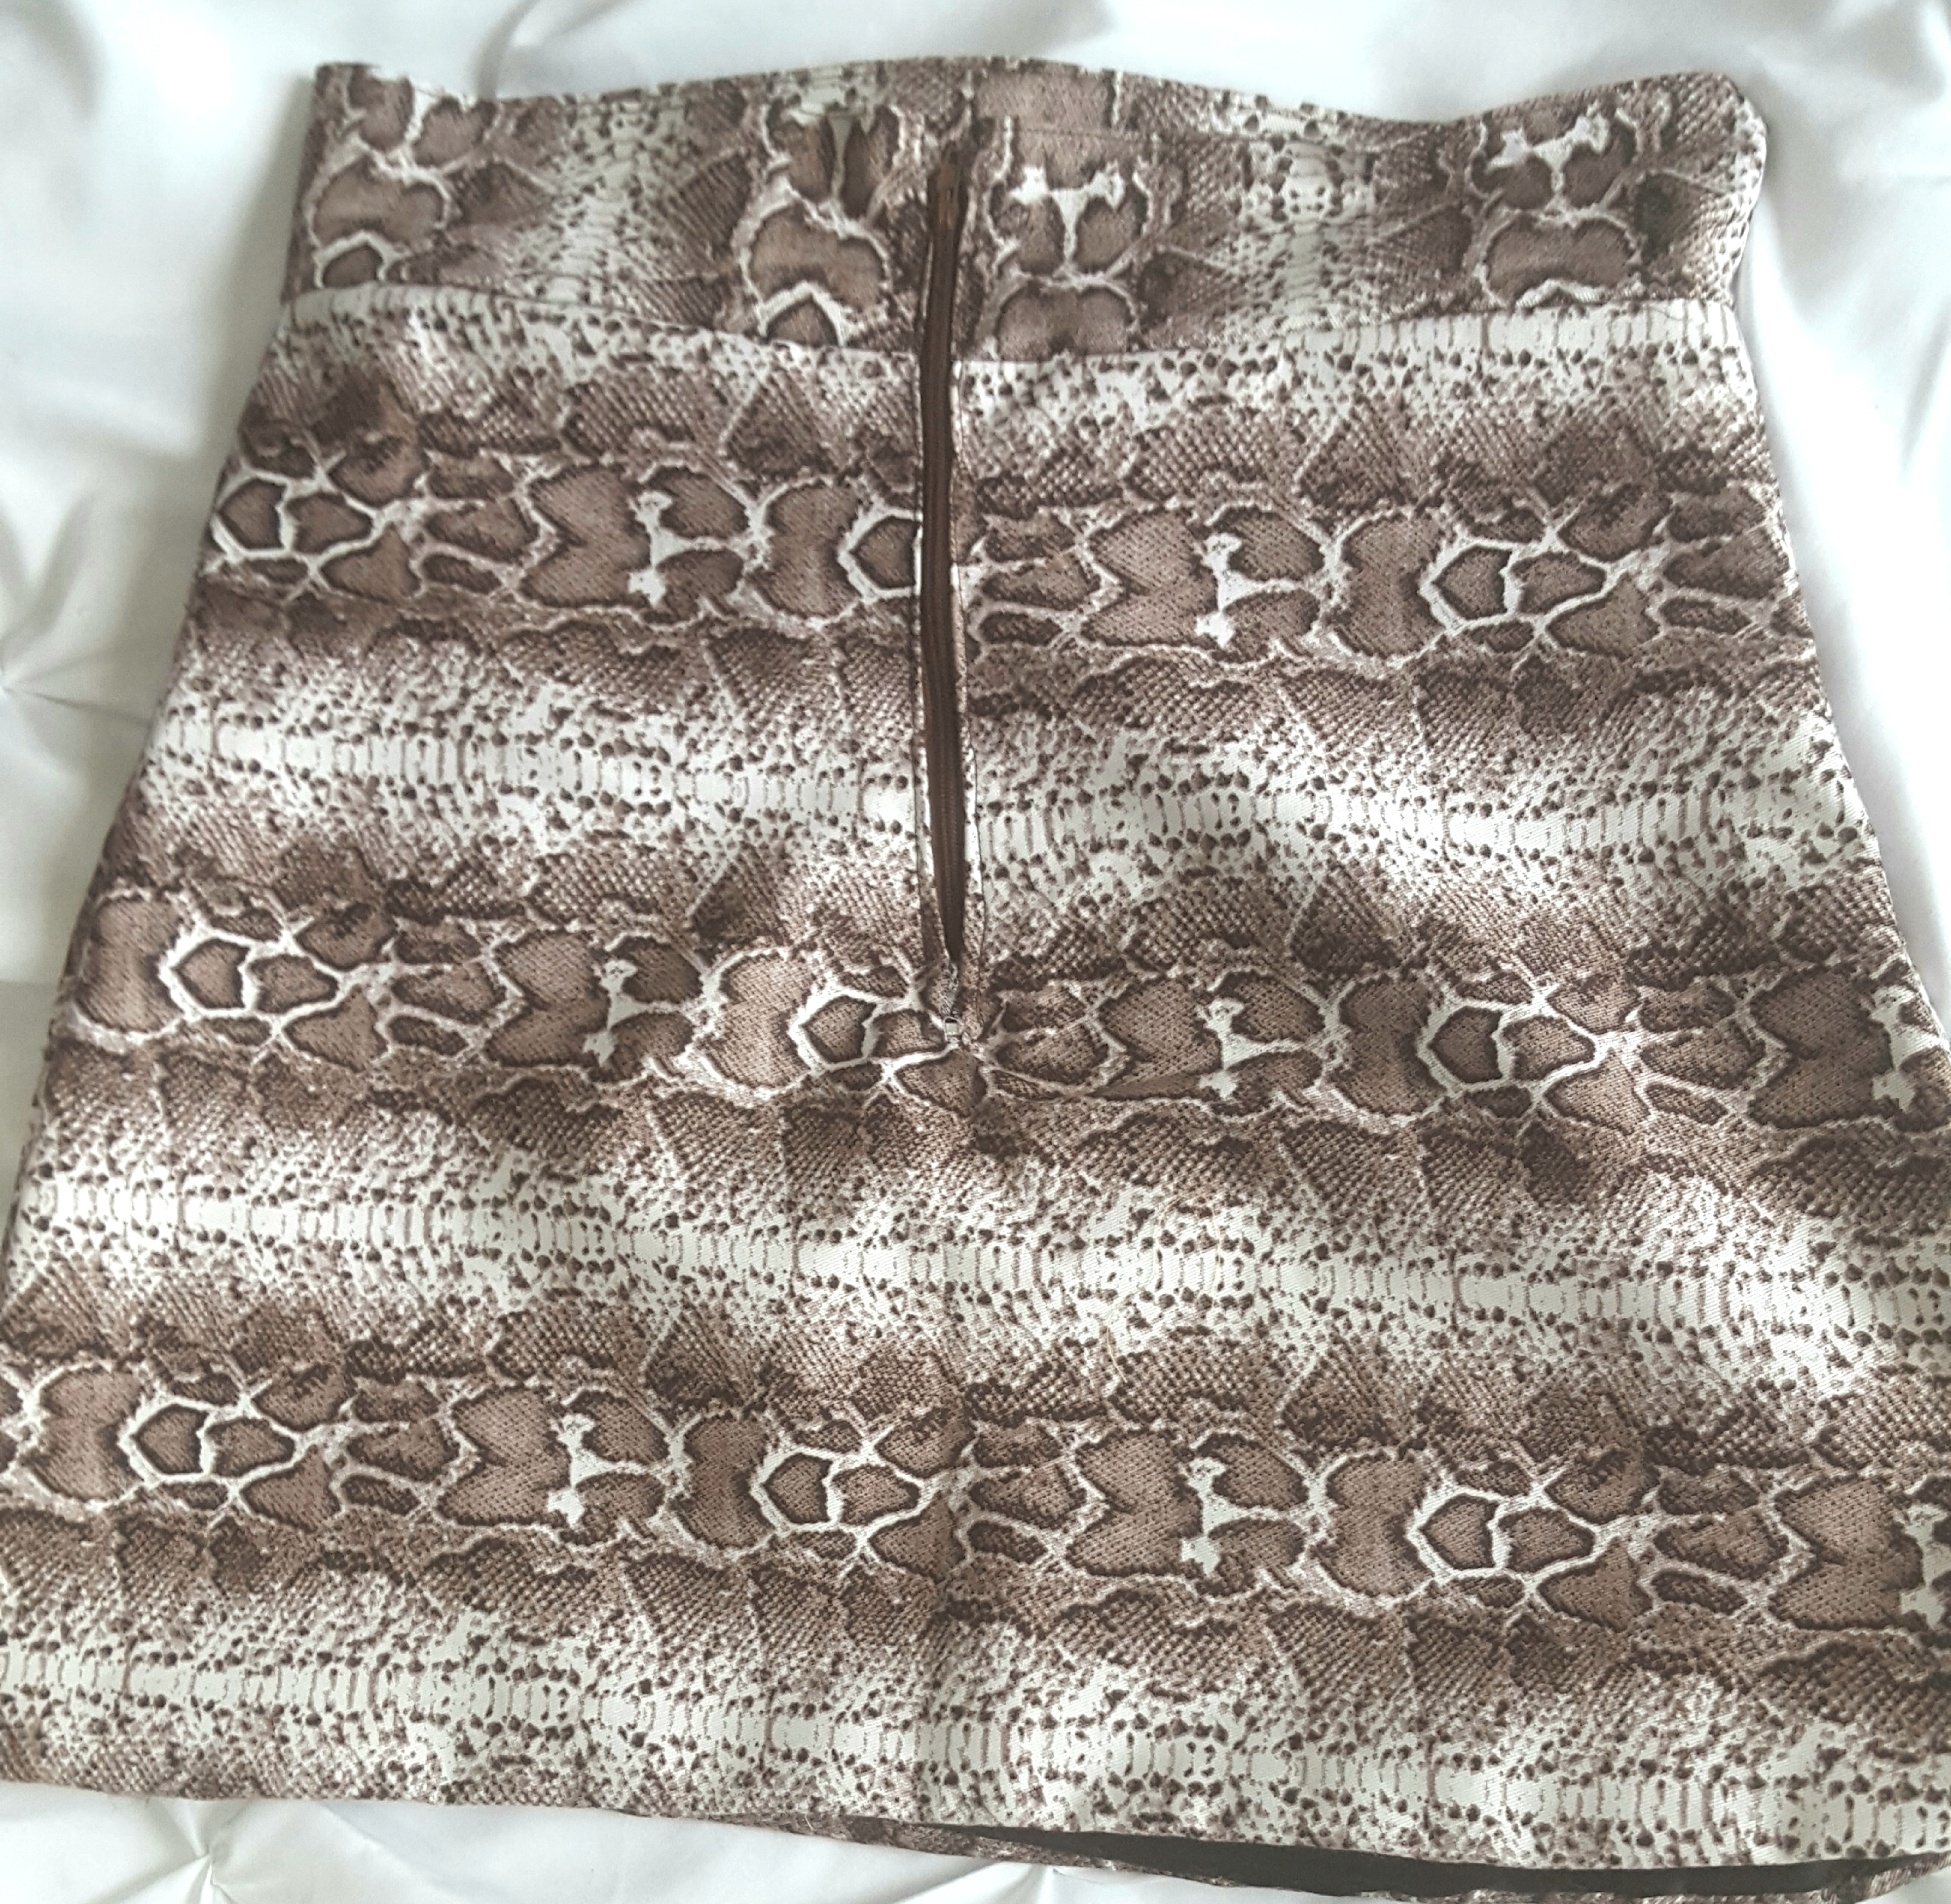 Back of snakeskin print skirt